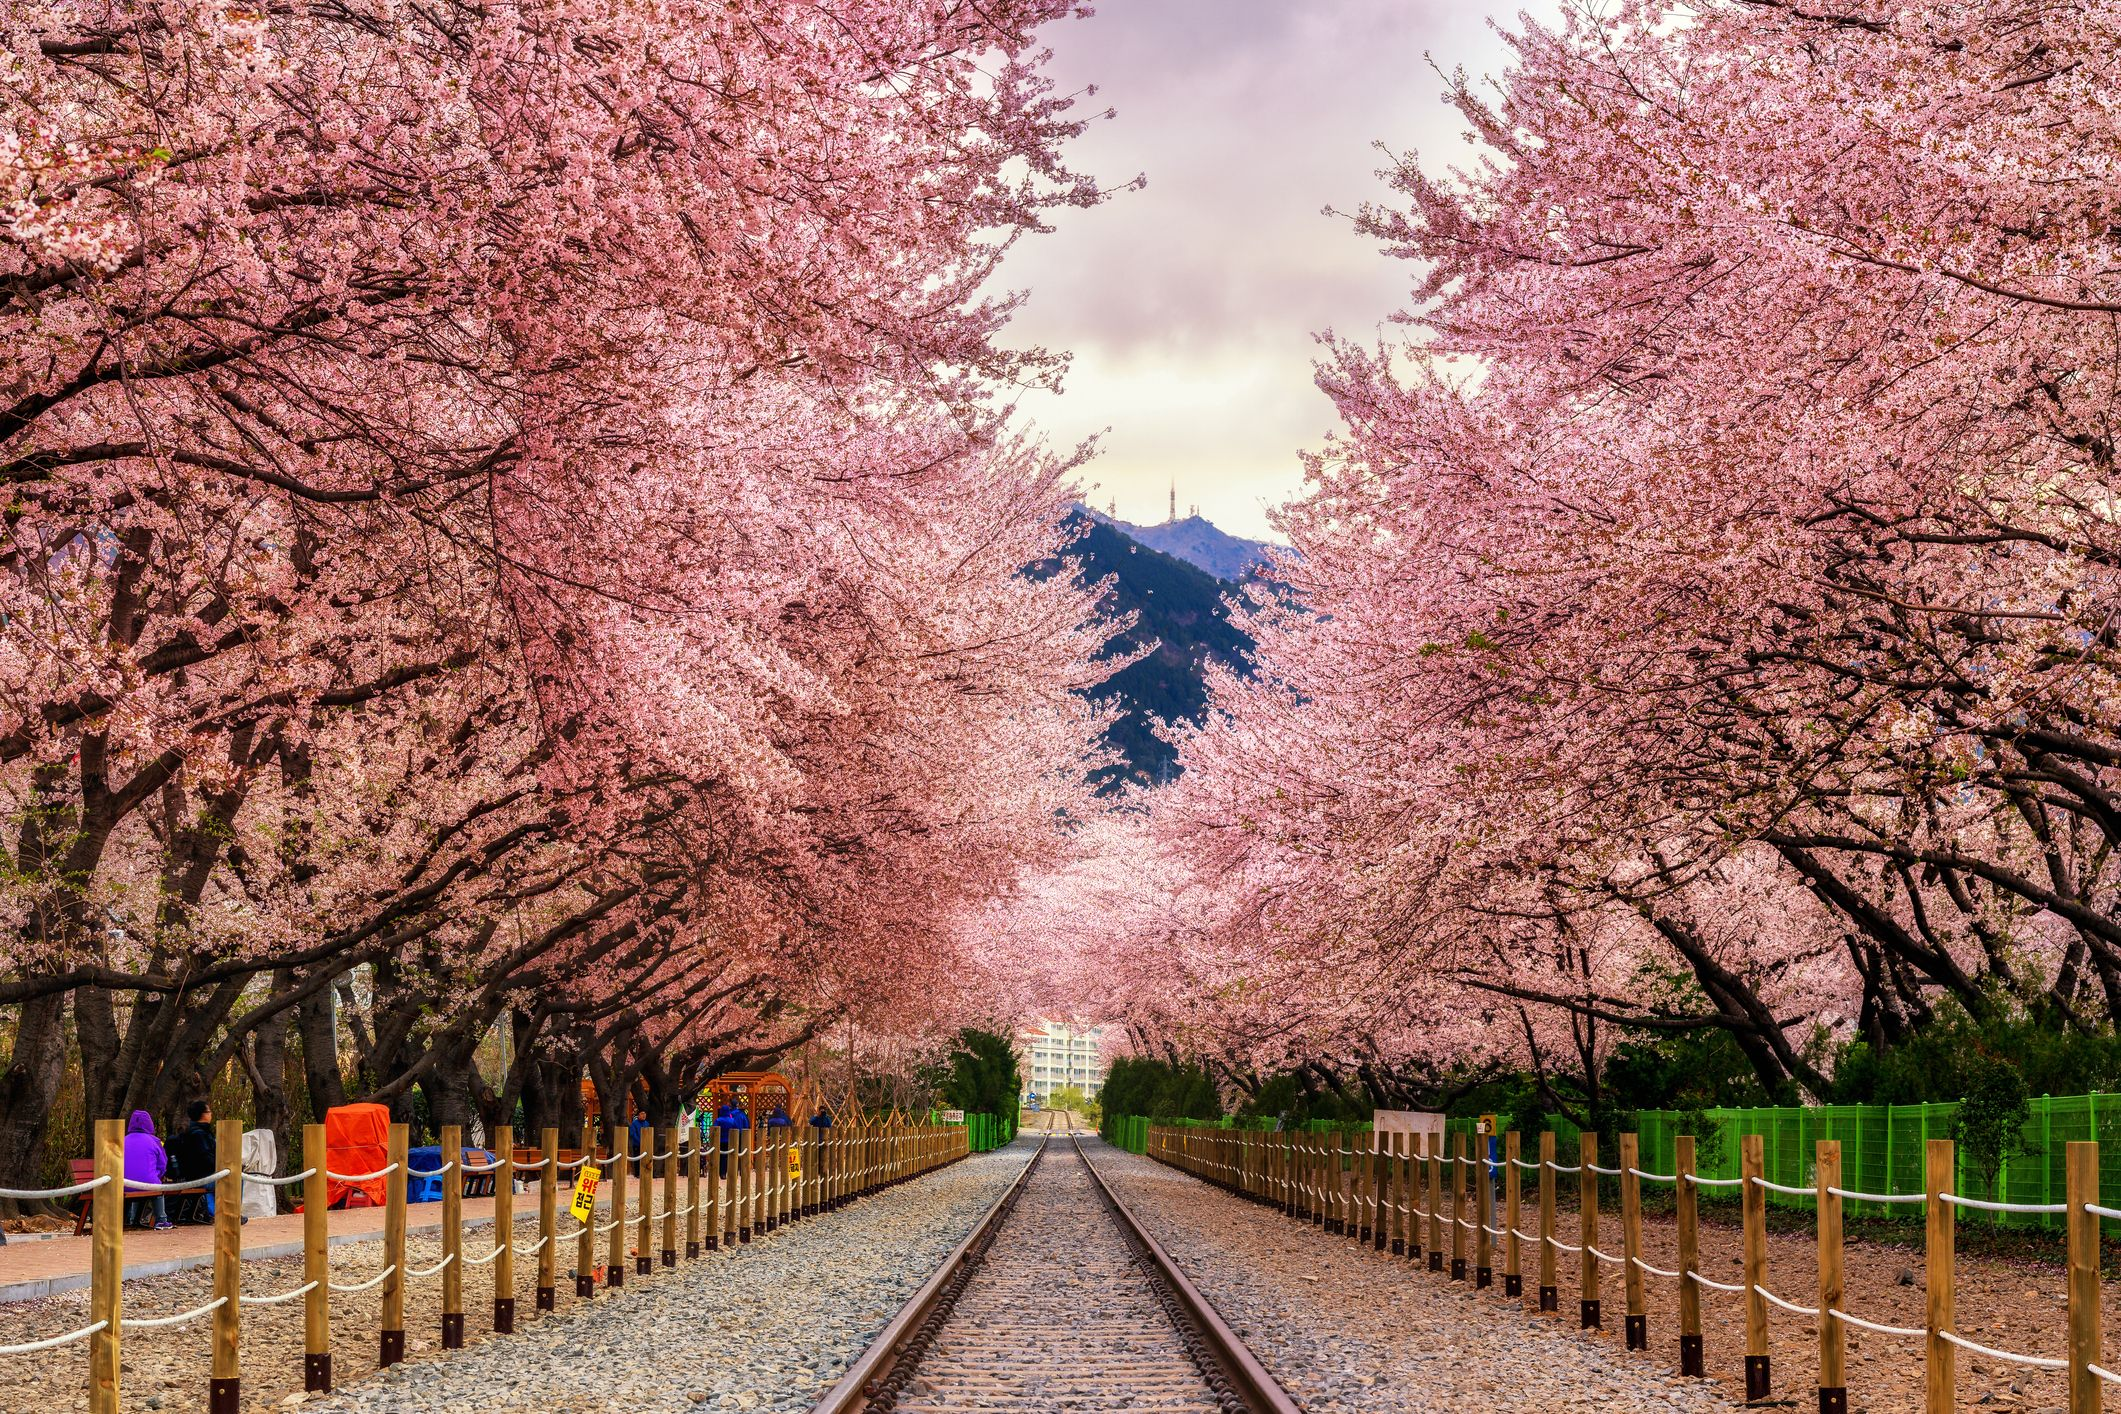 Best Cherry Blossom Cities In The WorldWhere to See